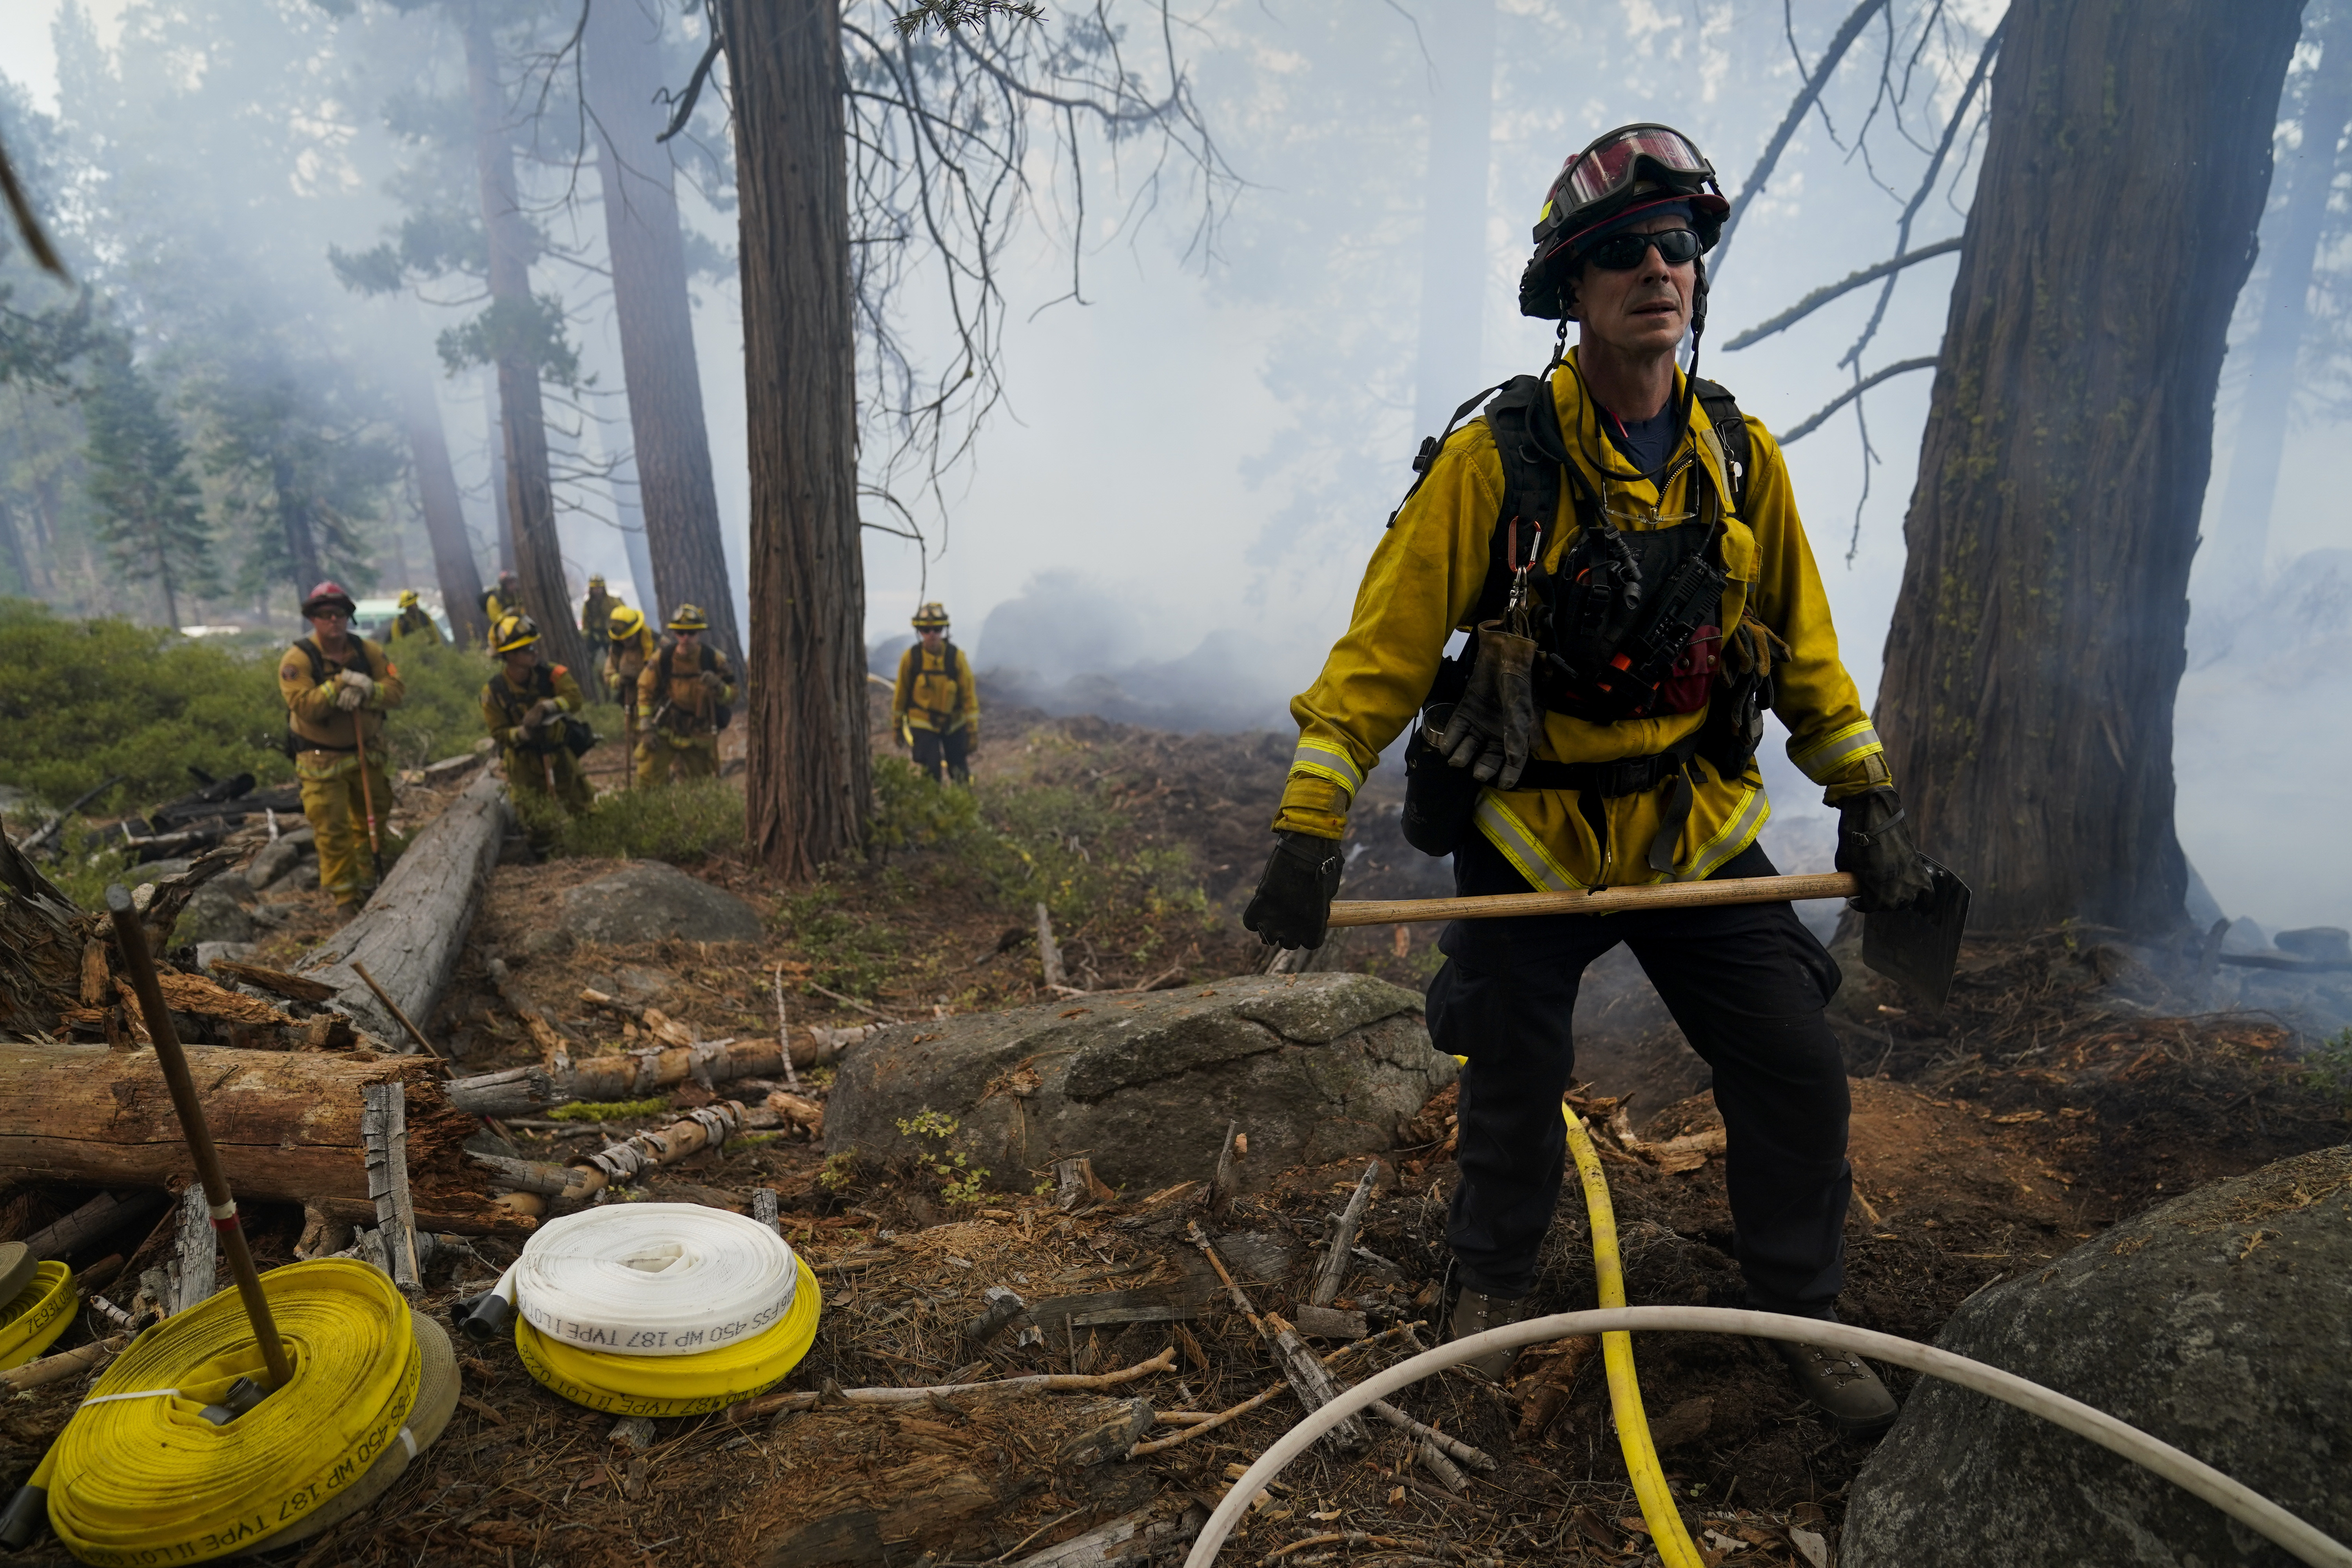 South Lake Tahoe residents can return as fire threat eases